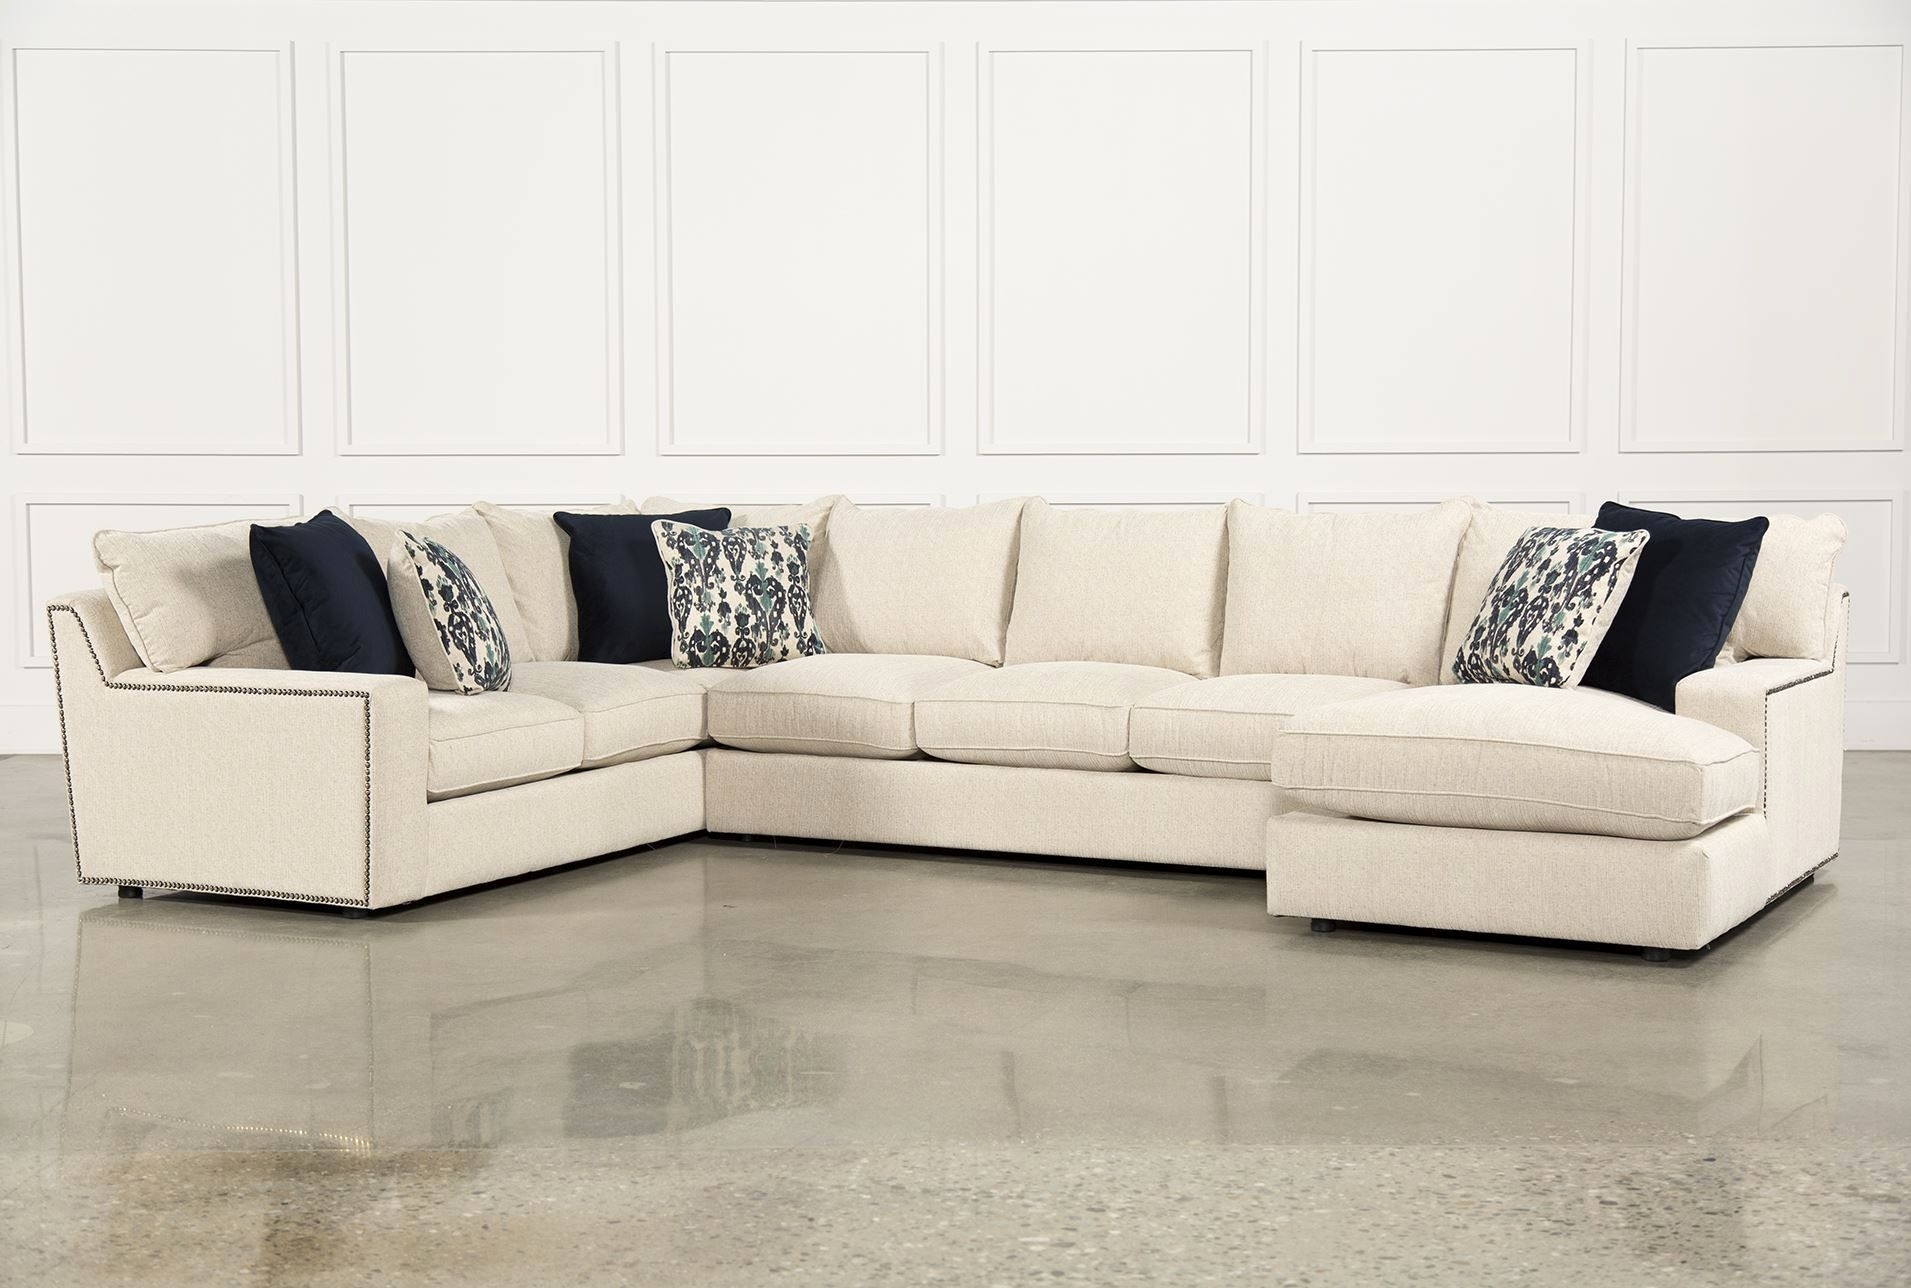 Amazing 3 Piece Sectional Sofa Images Rennell 3 Piece Sectional W with Harper Down 3 Piece Sectionals (Image 3 of 30)